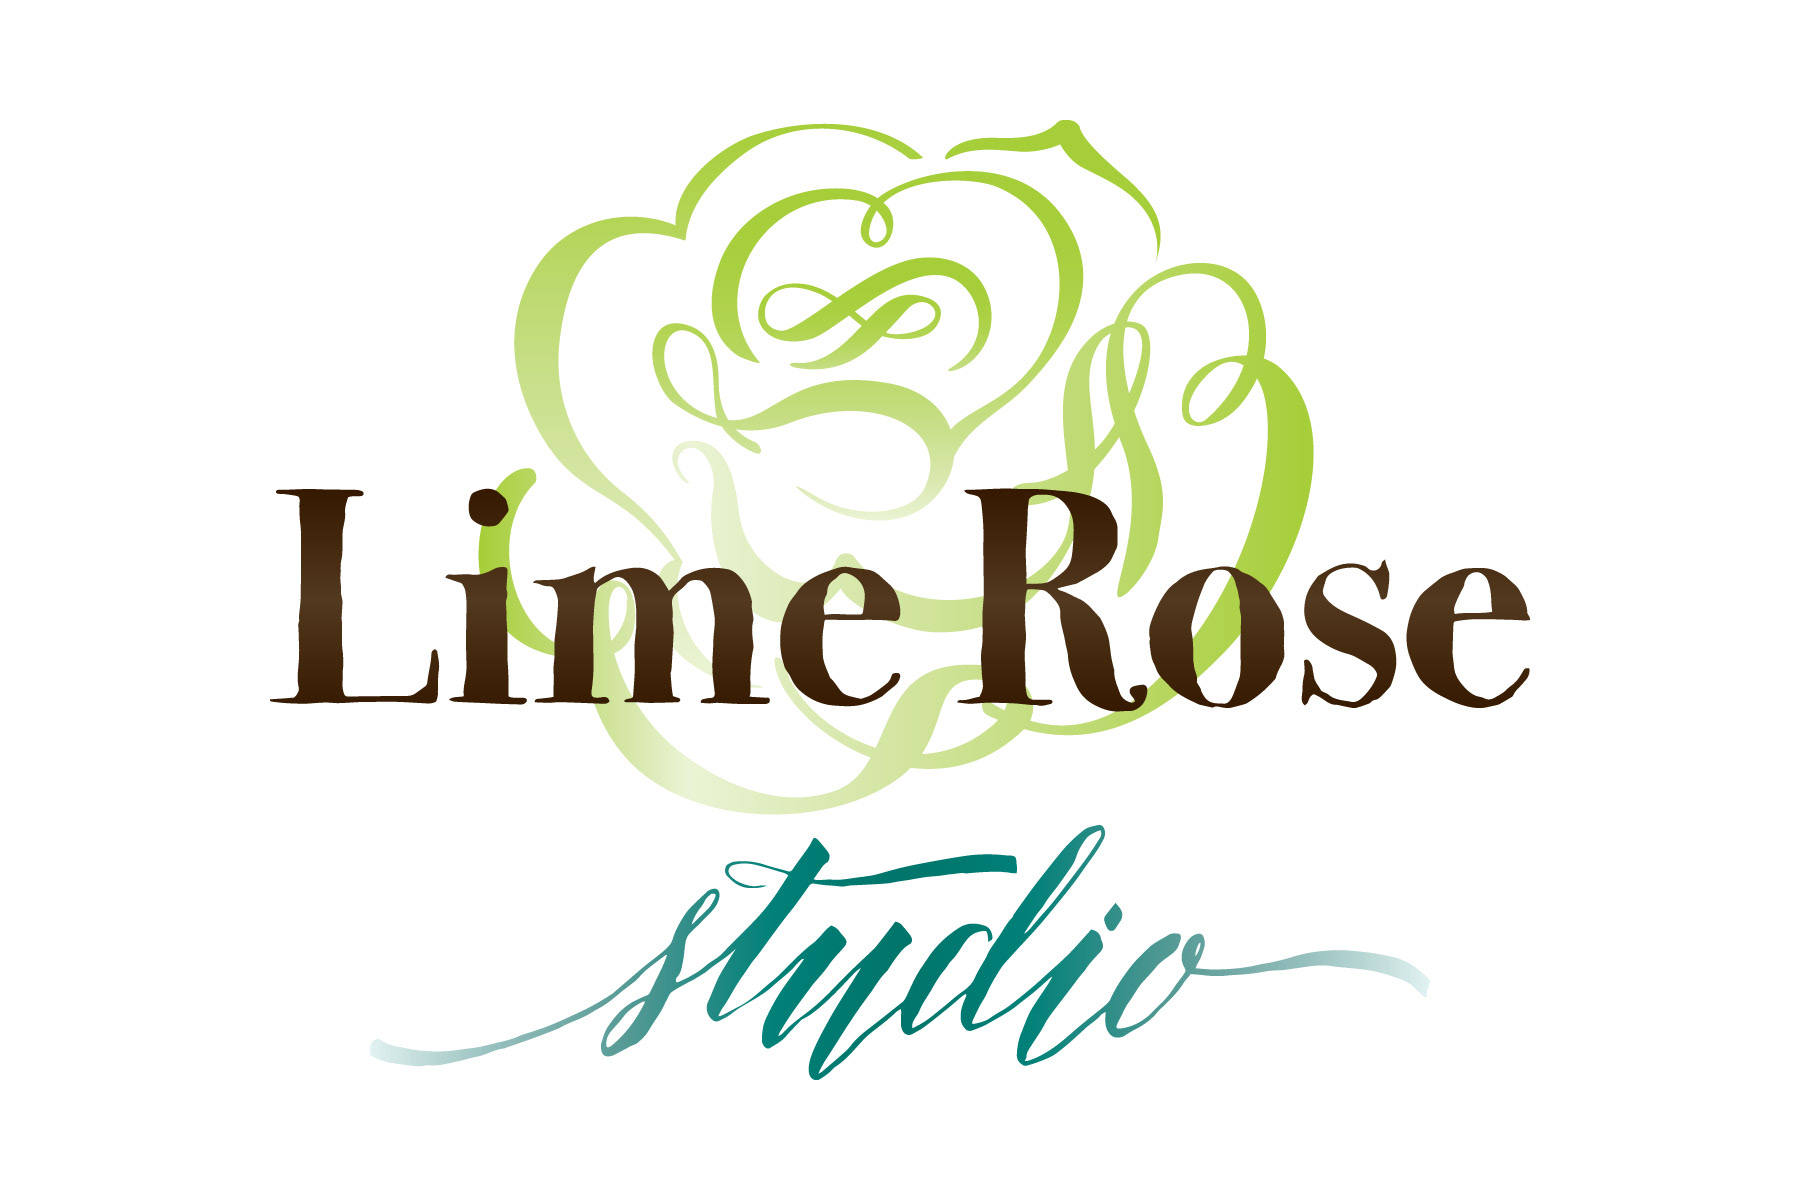 Lime Rose Studio